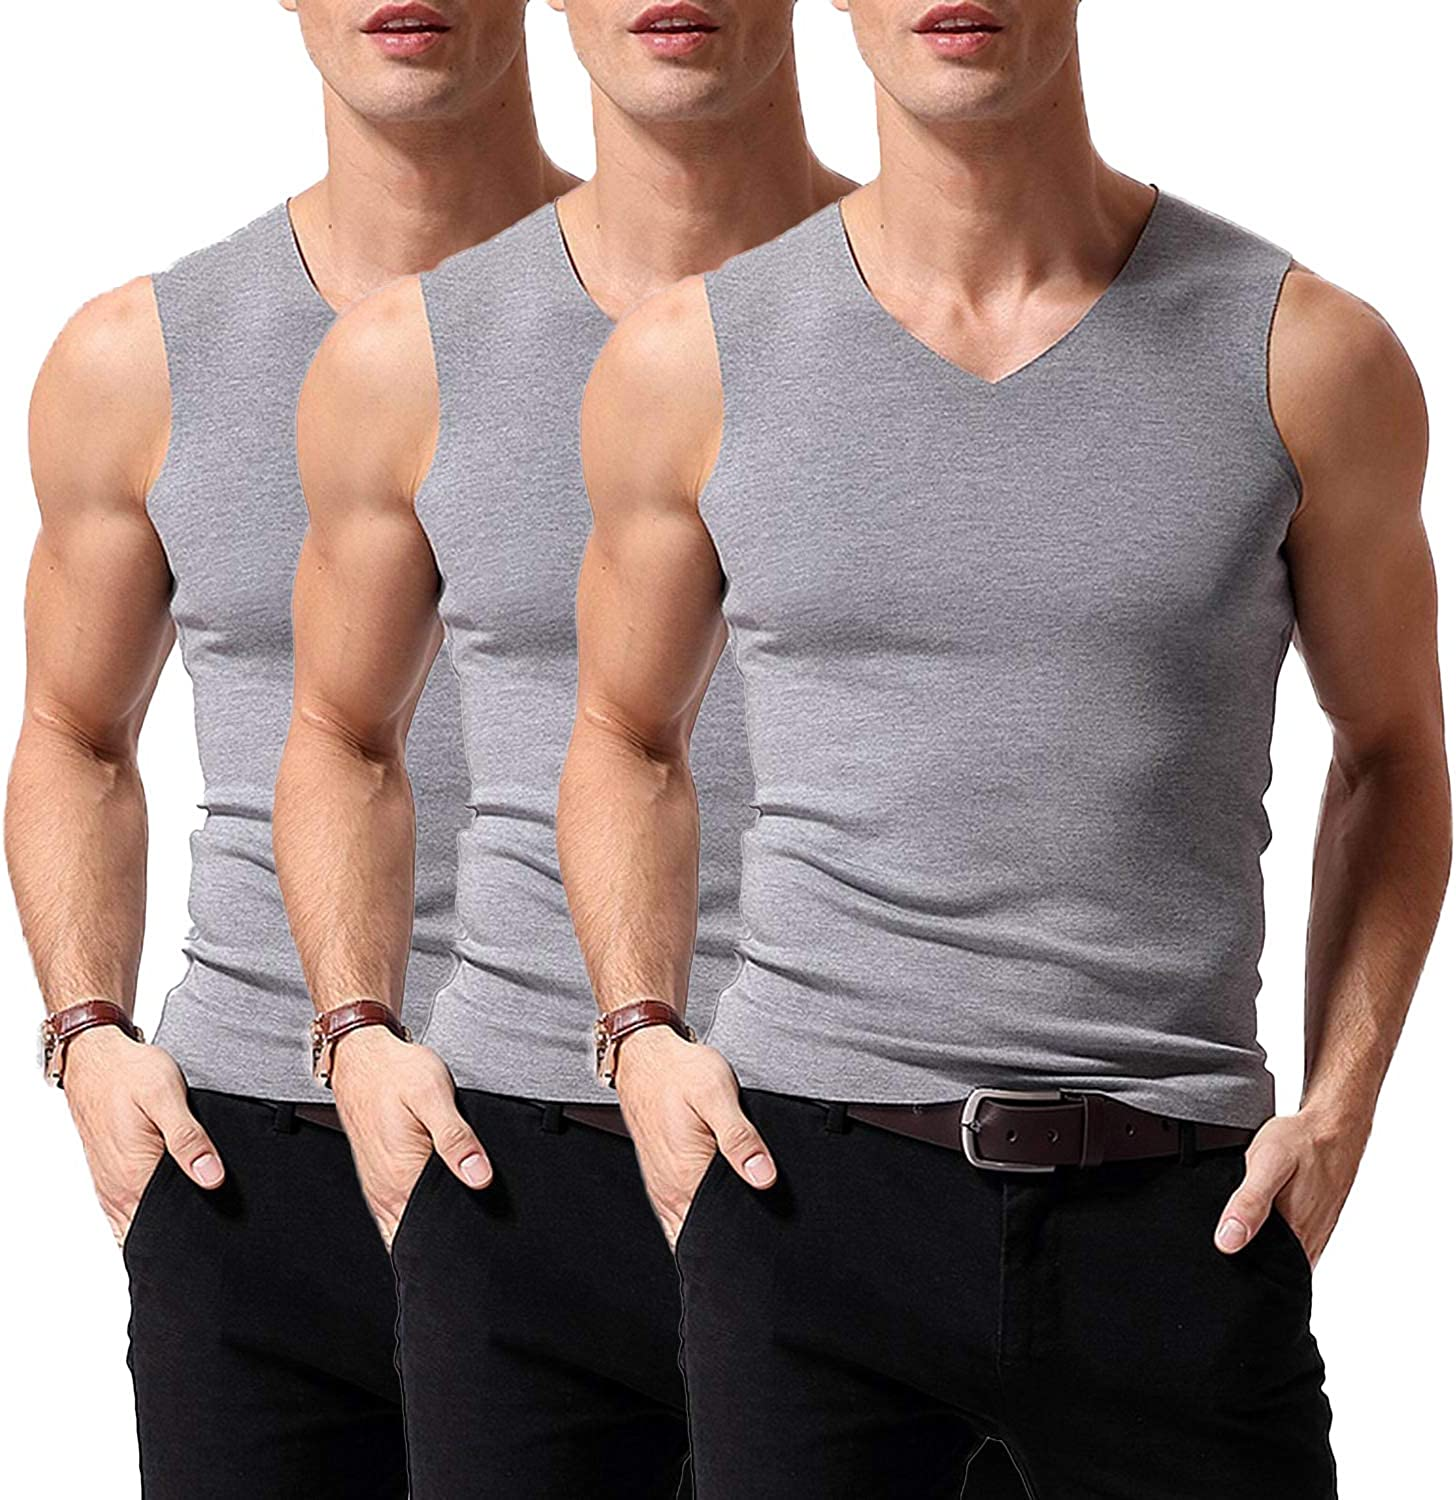 Elastic Undershirts with Fleece Lined Warmfort Mens Seamless V-Neck Thermal Tank Top